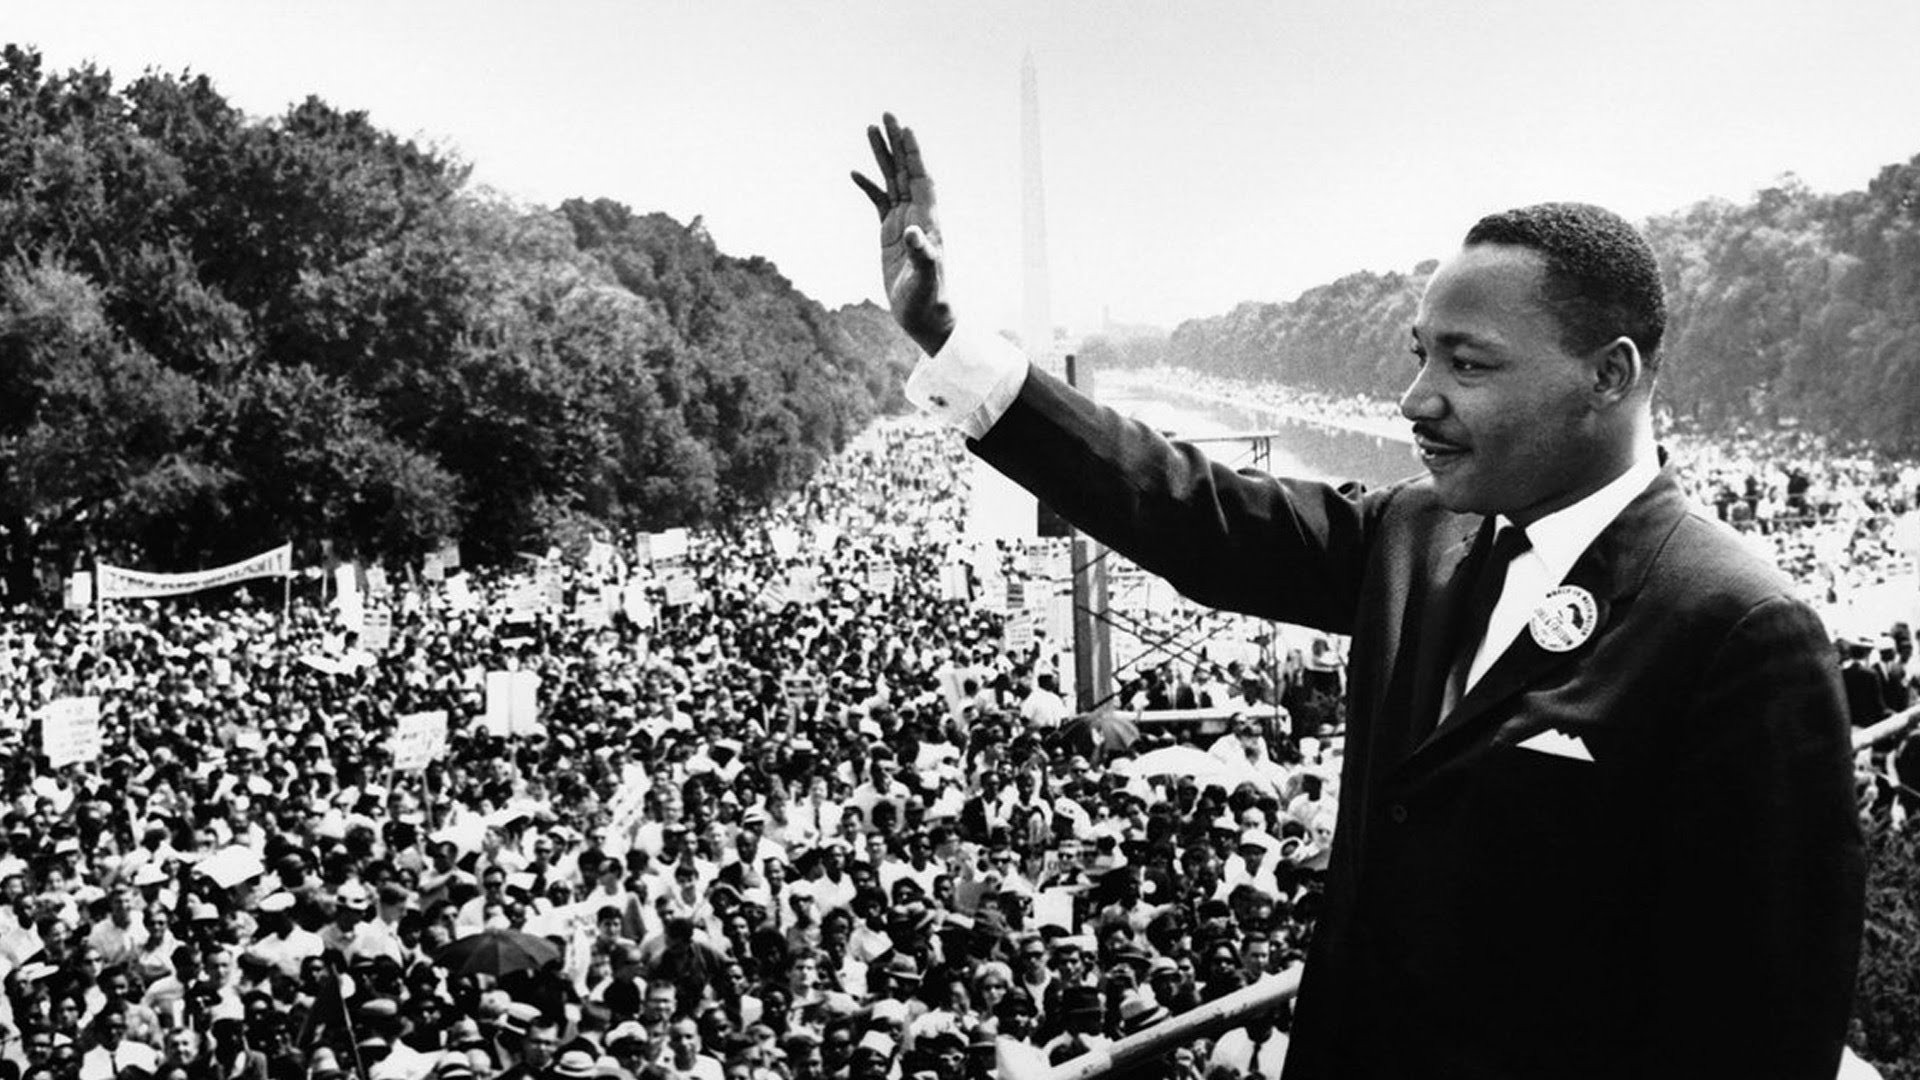 Martin Luther King Jr Hd Wallpaper For Desktop And Mobiles Iphone 7